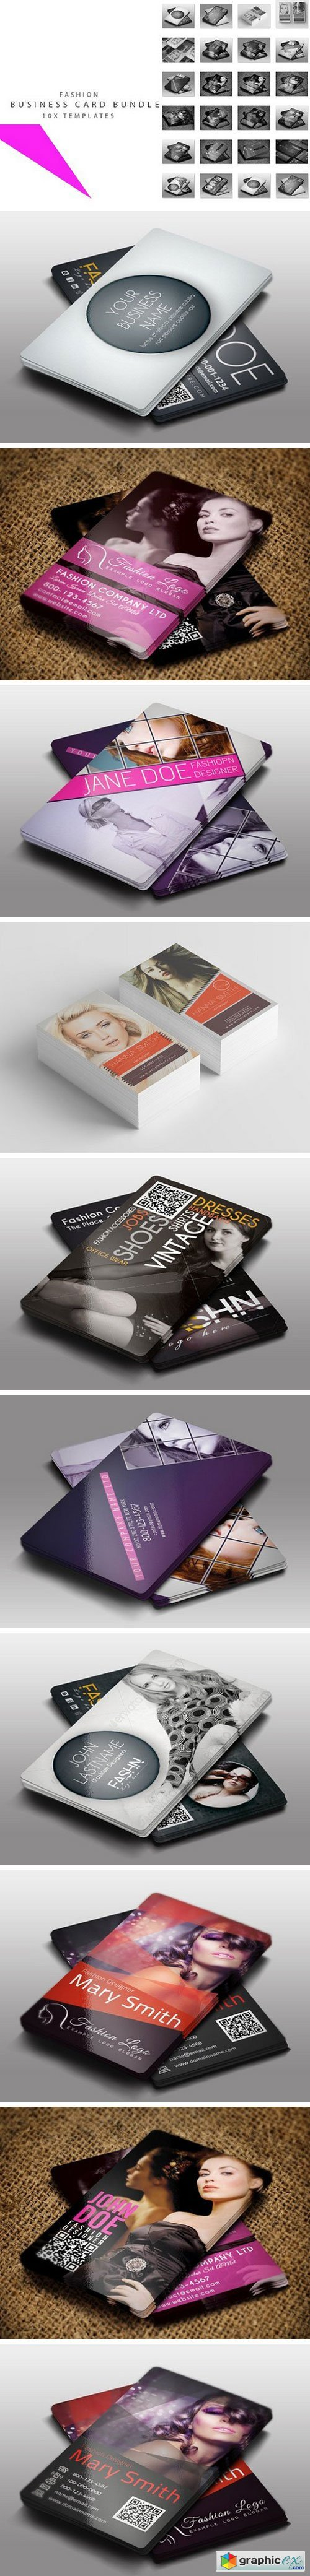 50 Stylish Fashion Business Cards Designs - TutorialChip Business cards for fashion industry